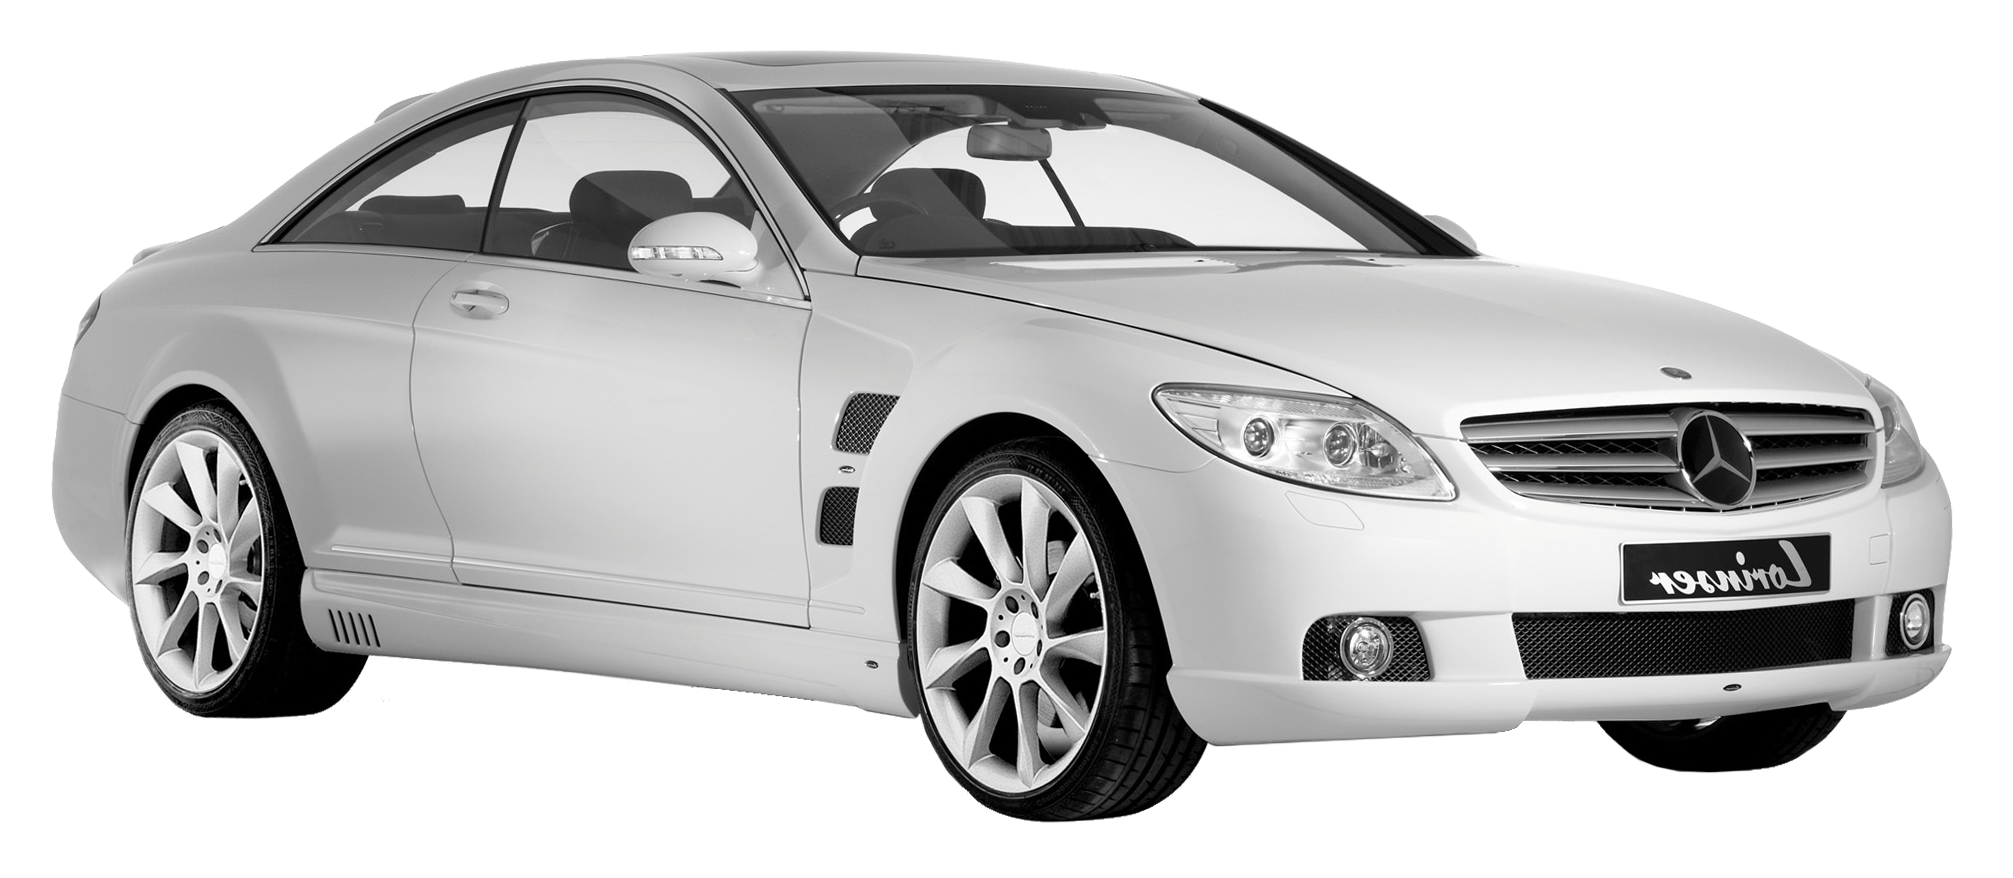 Bsp motor vehicle loan download free clipart with a.